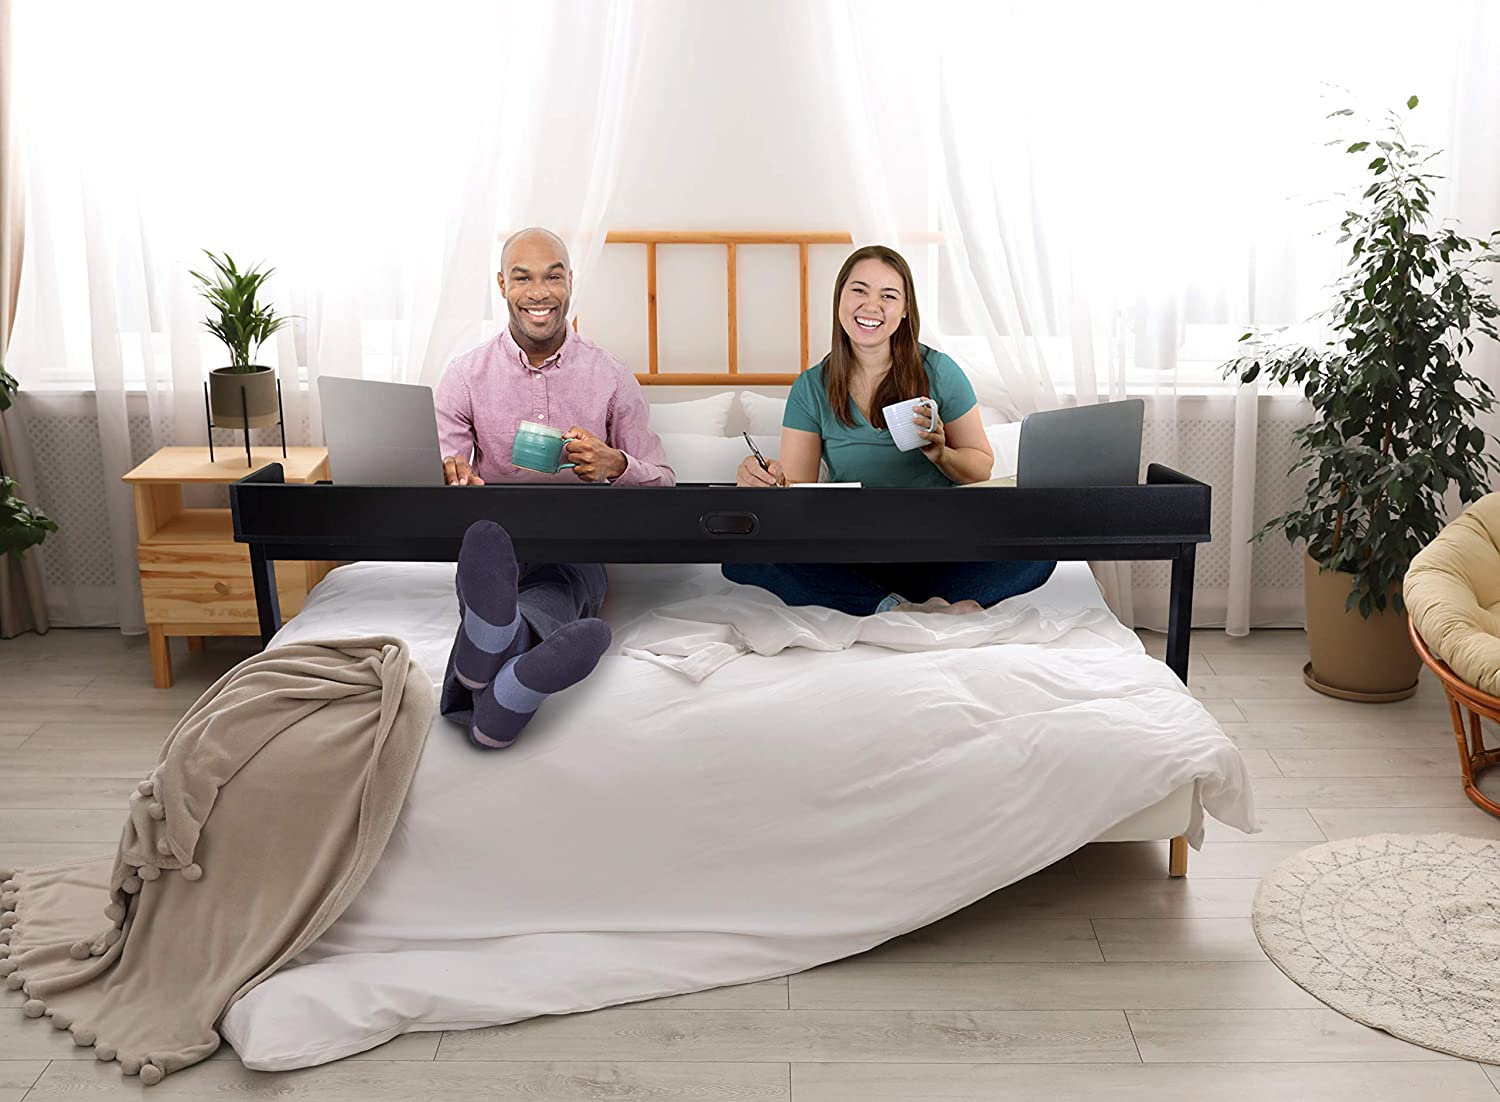 best bed tray tables joy overbed